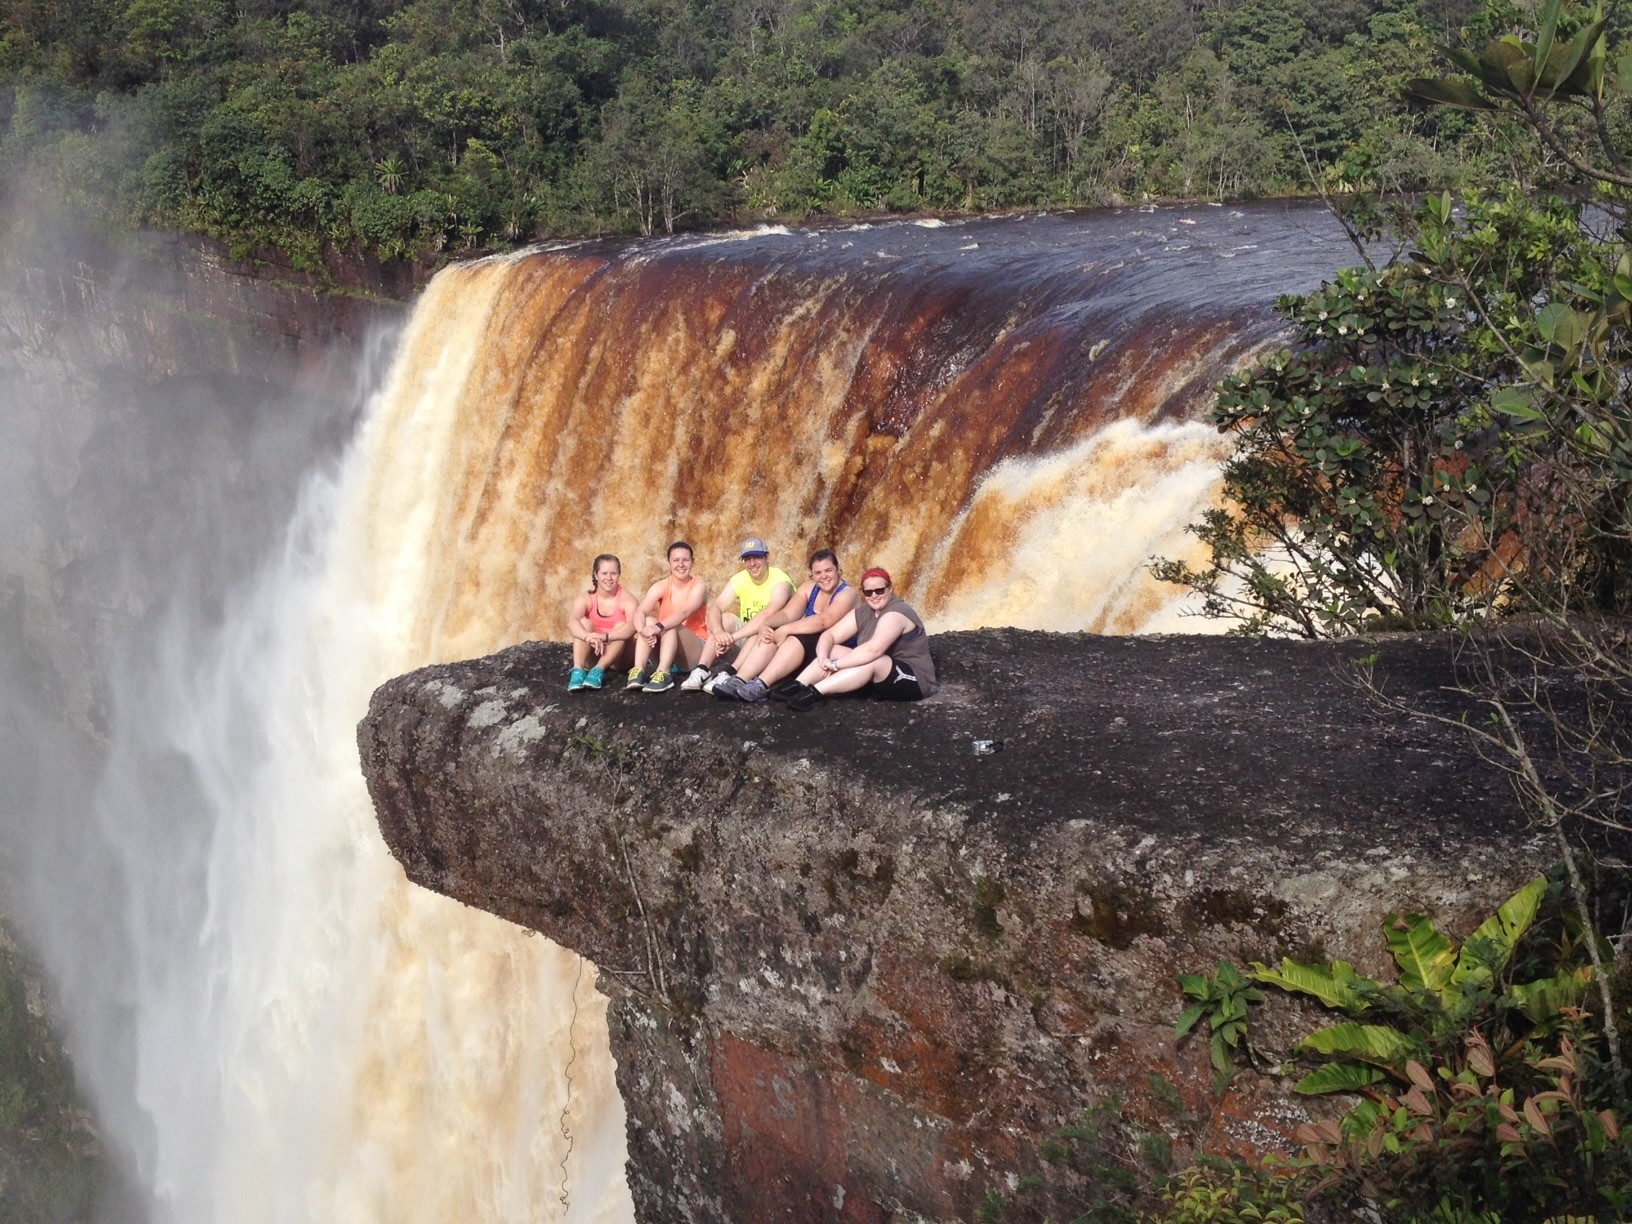 Kayleigh Morein, second from left, with her travel partners from Misericordia University at Kaieteur Falls in Guyana, a waterfall four times higher than Niagara Falls.